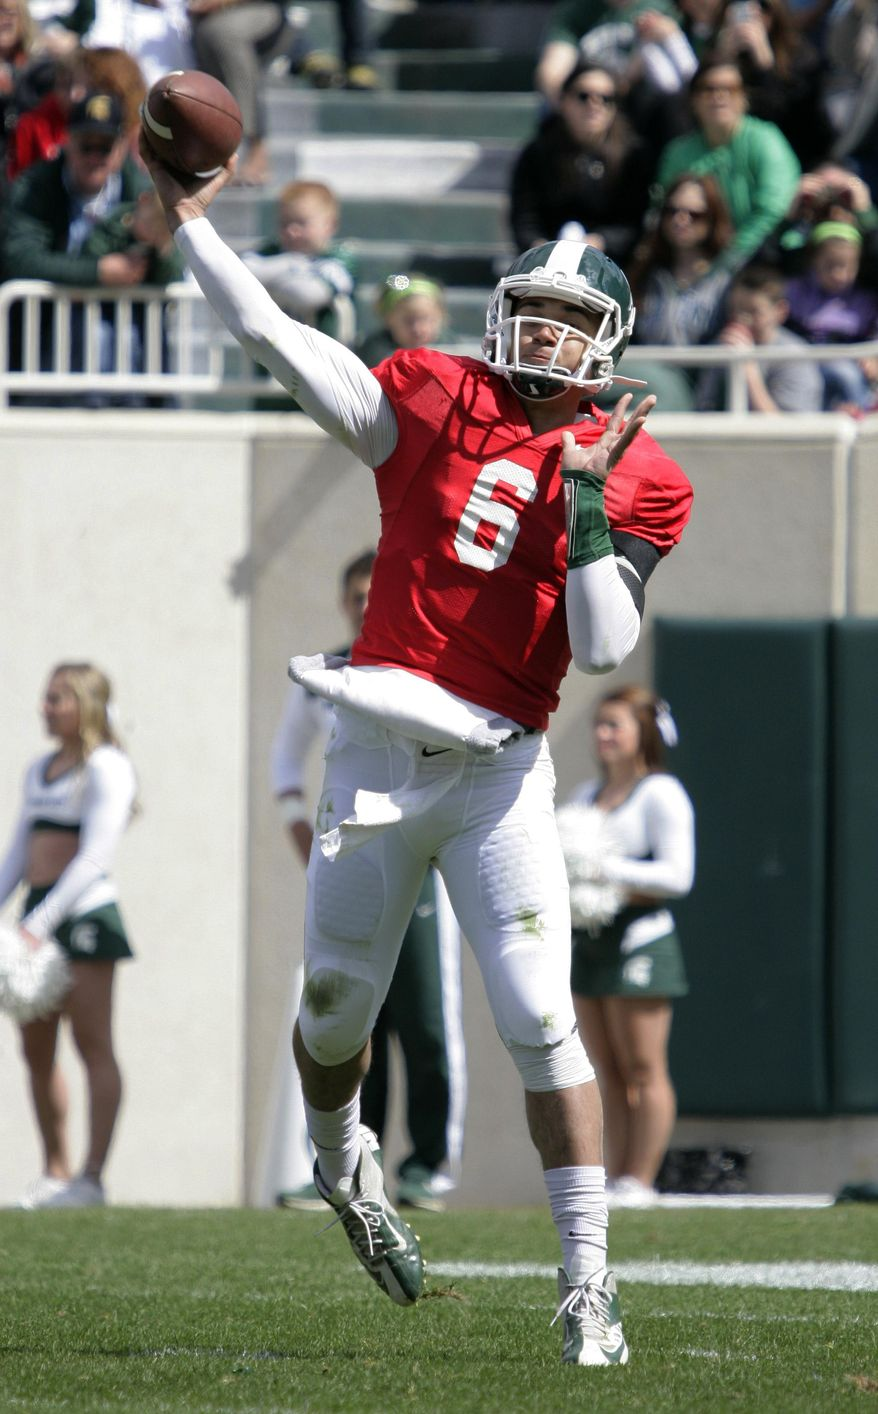 Michigan State quarterback Damion Terry throws a pass during the NCAA college football team's scrimmage, Saturday, April 26, 2014, in East Lansing, Mich. (AP Photo/Al Goldis)